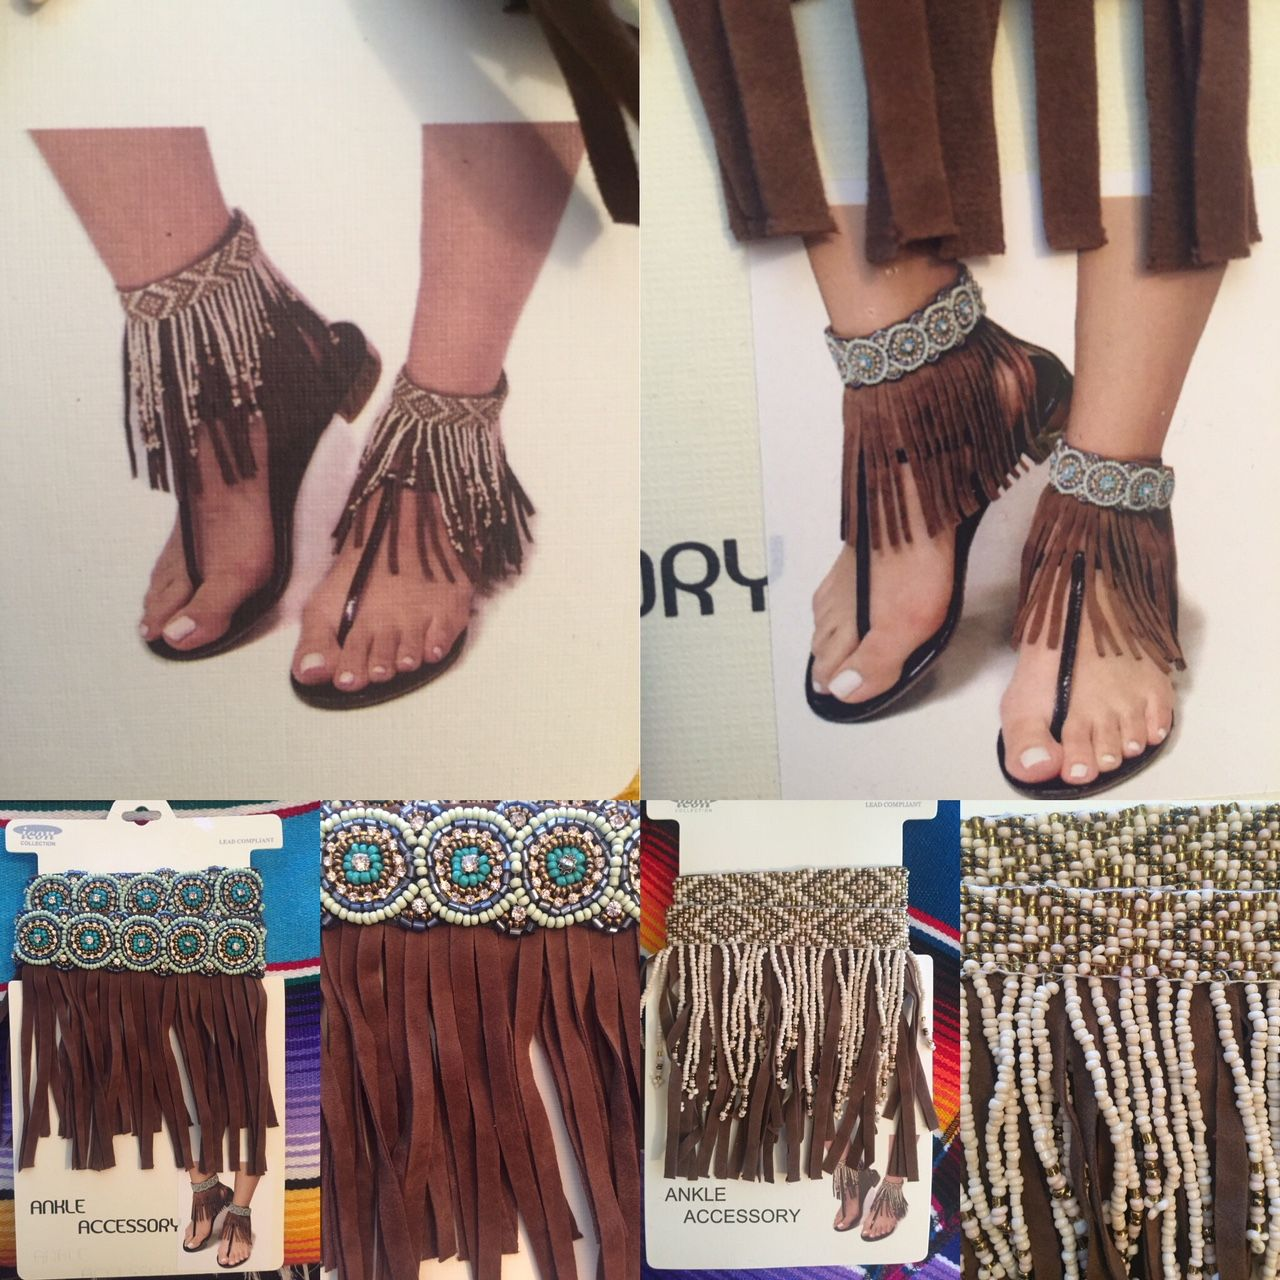 Ankle candy dress up your old sandals or backless heels